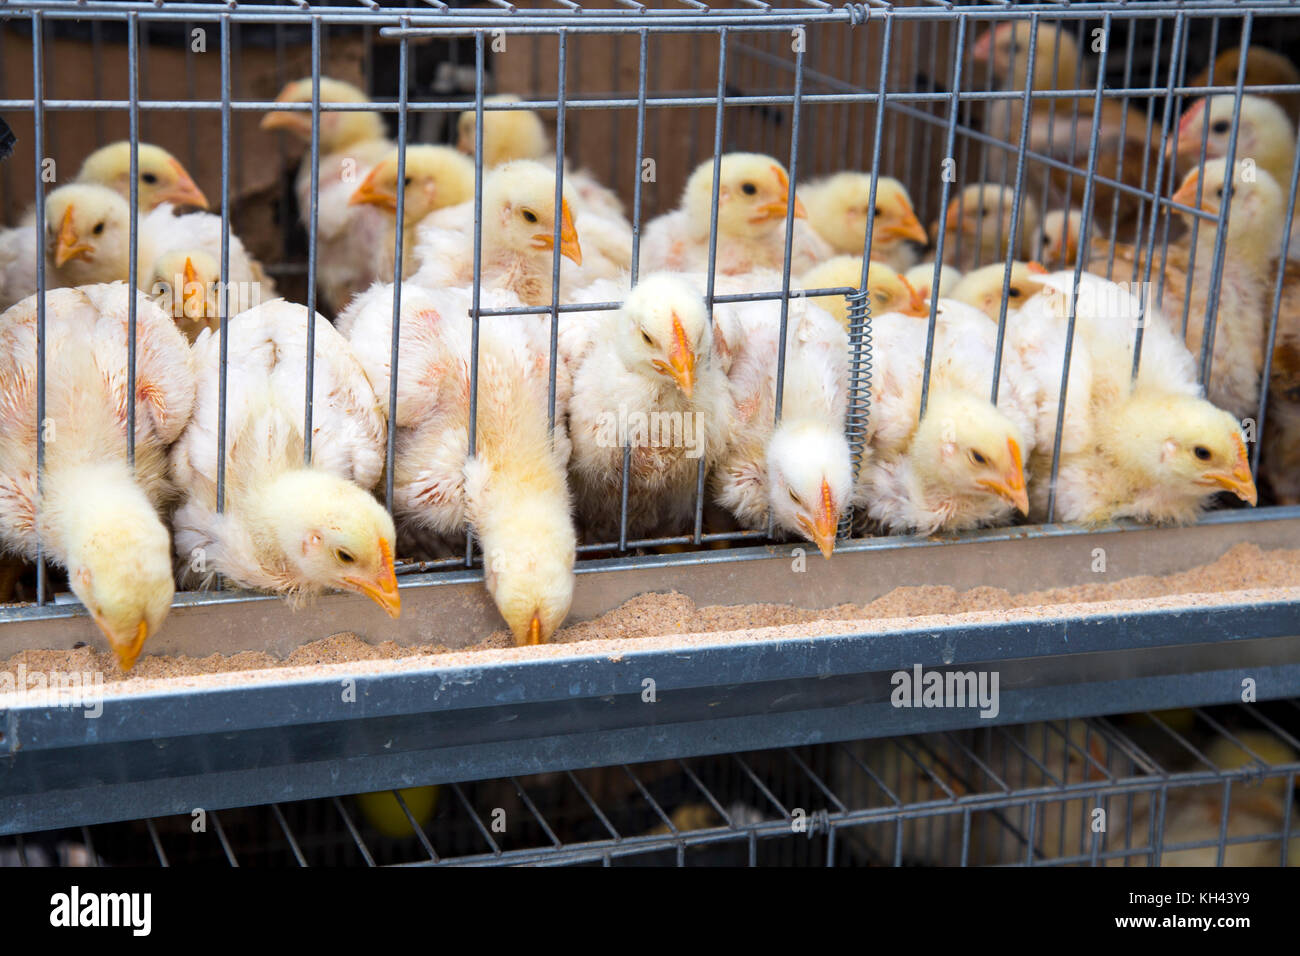 Young baby chicks in a crowded cage eating feed - Stock Image